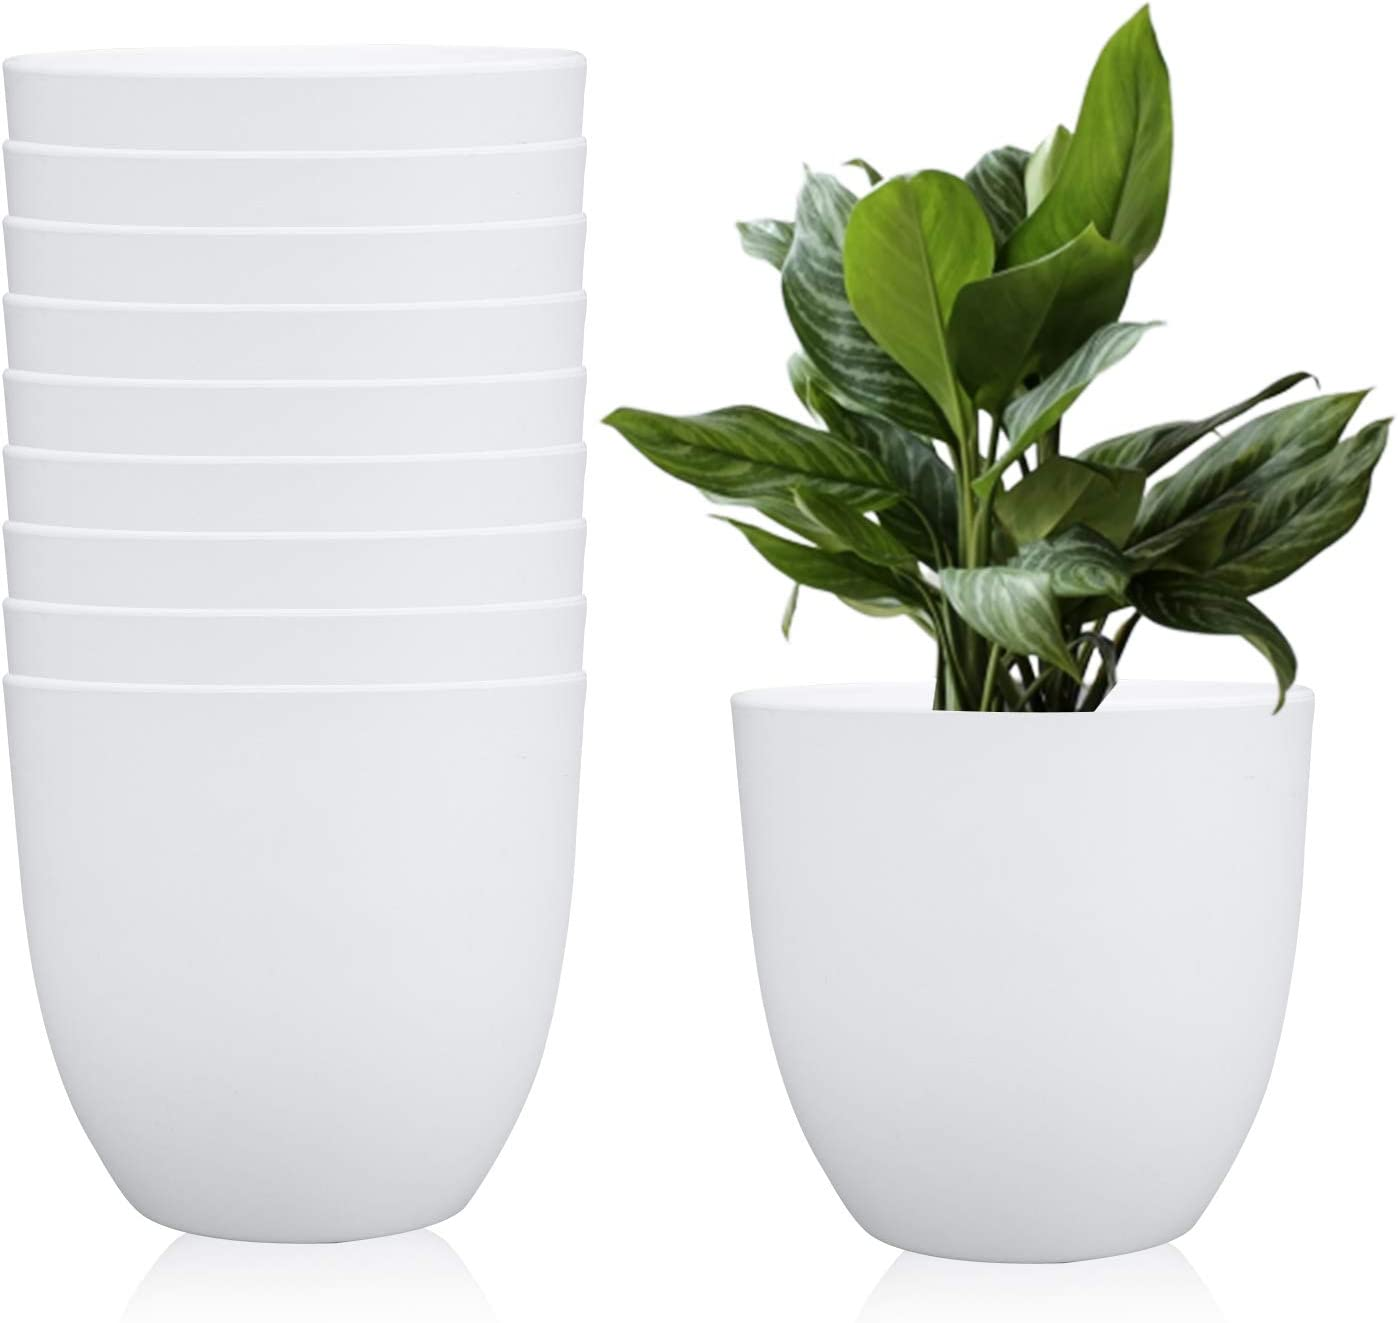 6.3 Inches Plastic Round Garden Pot, Fashionable Planters, Plant Pots, Gardening Containers, Perfect for Yard/Garden/Office/Bathroom/Kitchen/Flower/Succulents, Set of 10 (White)